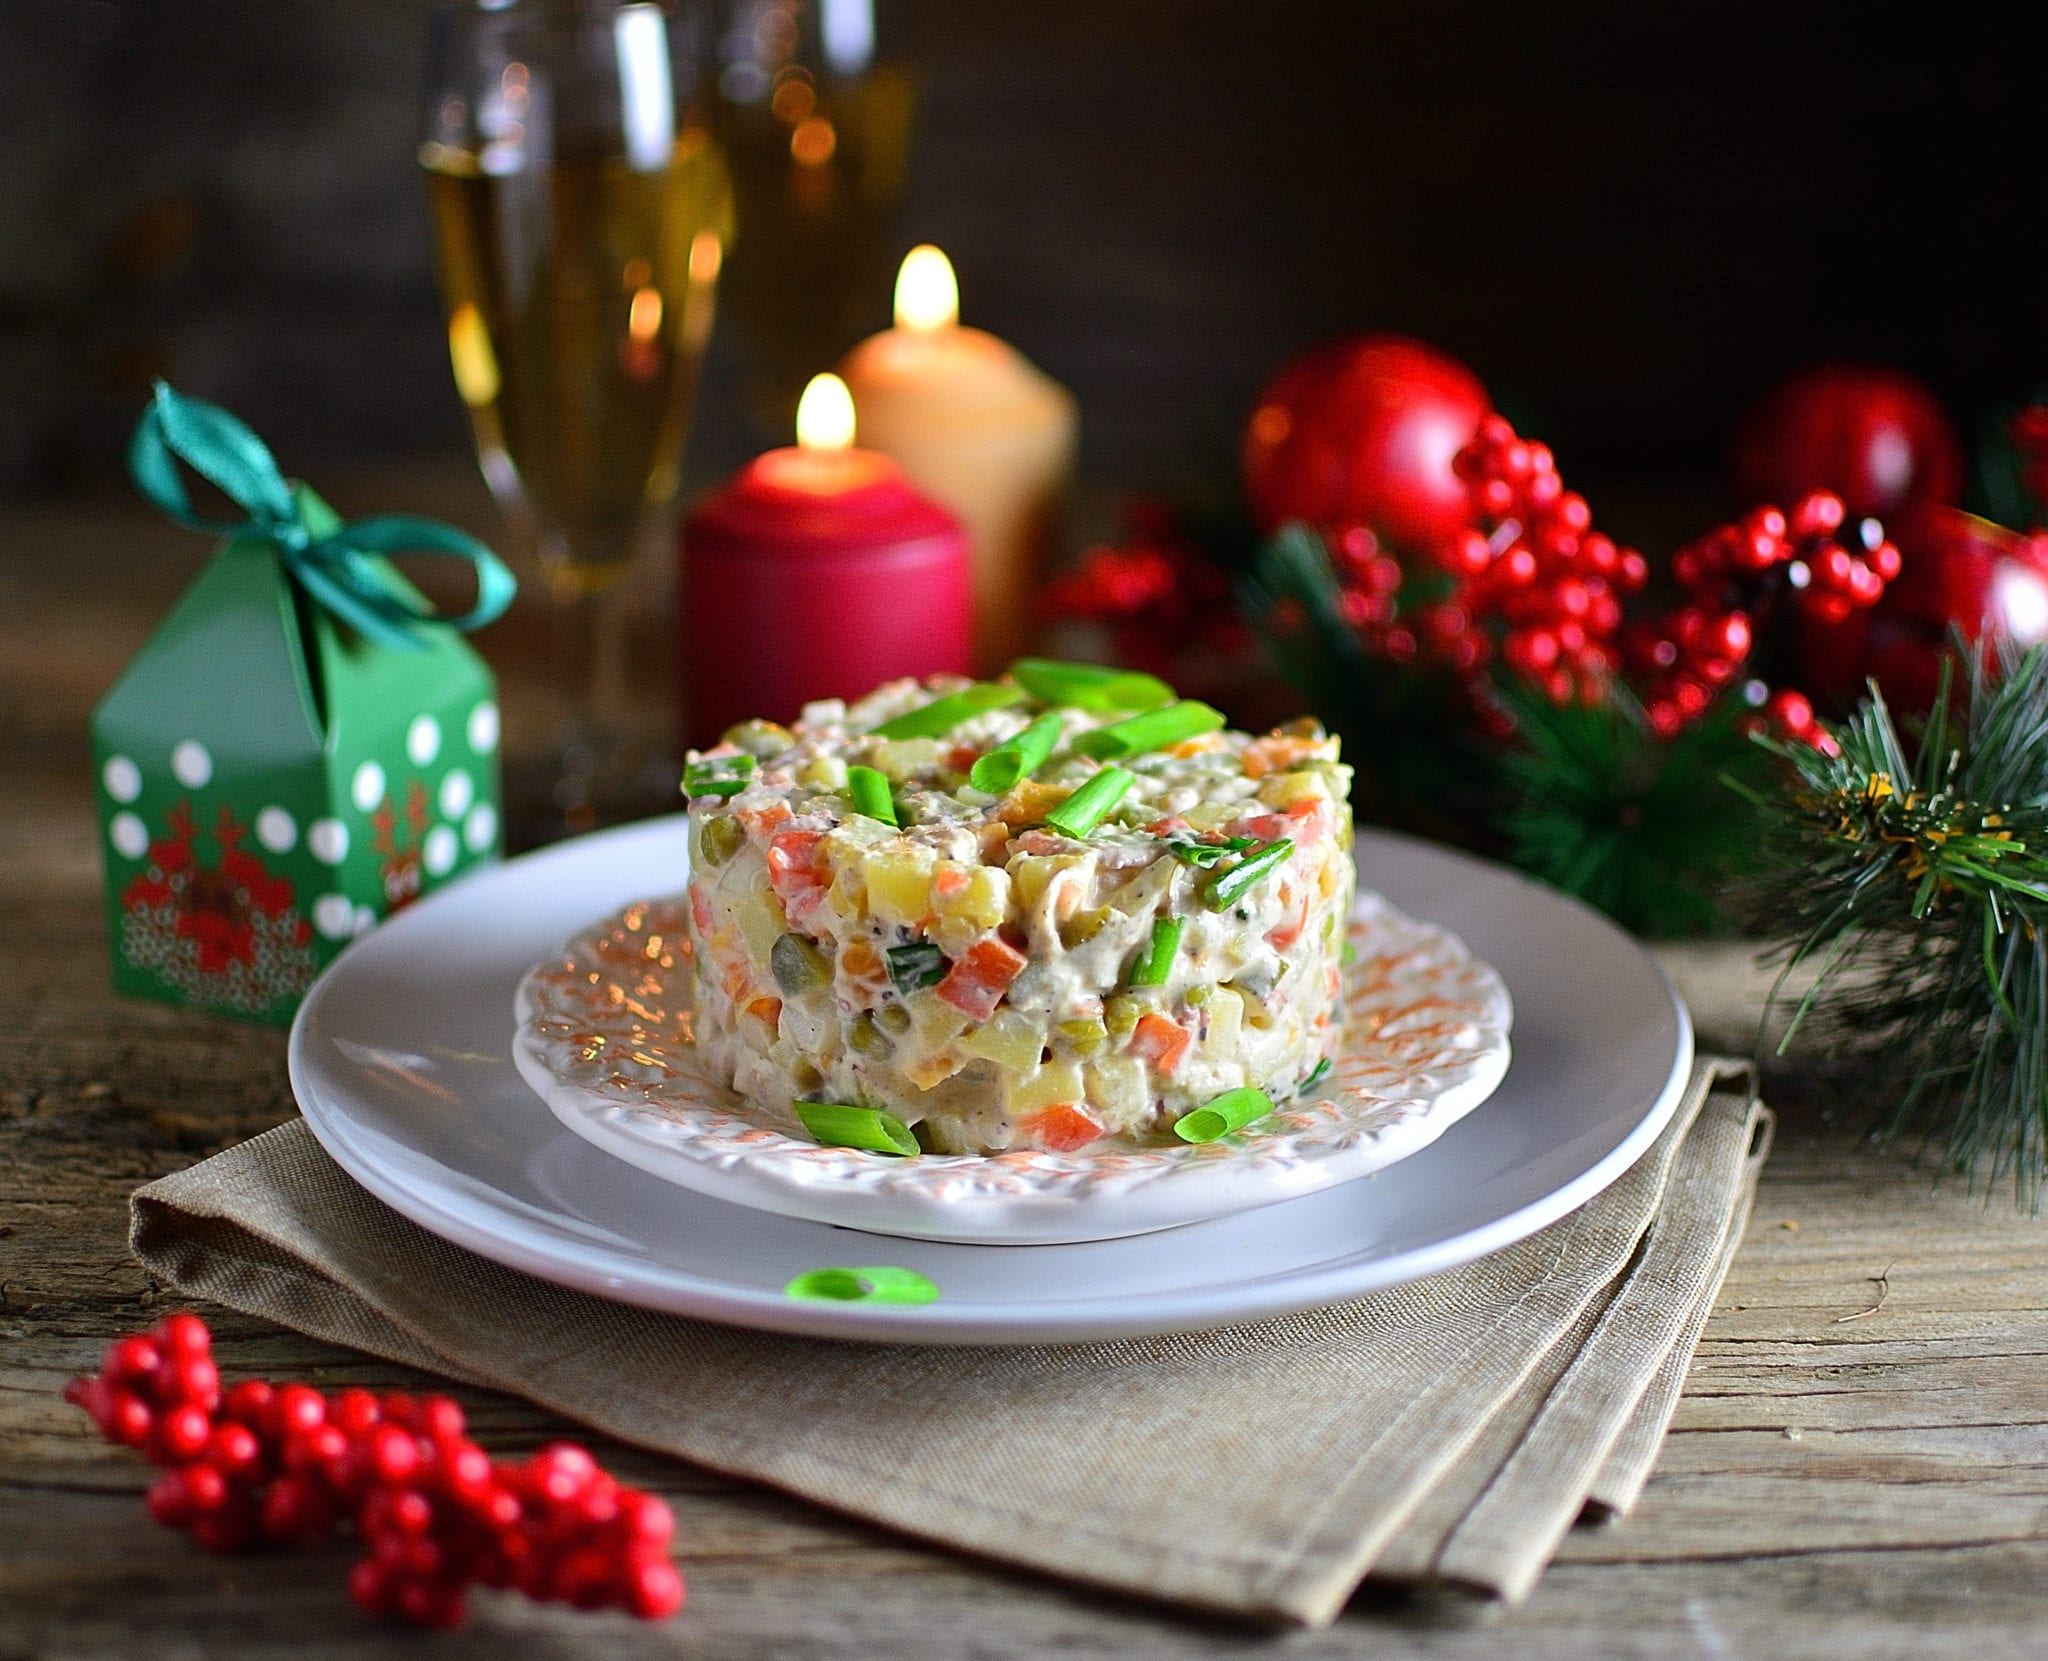 Salad Olivier: The Centerpiece of Russian New Year